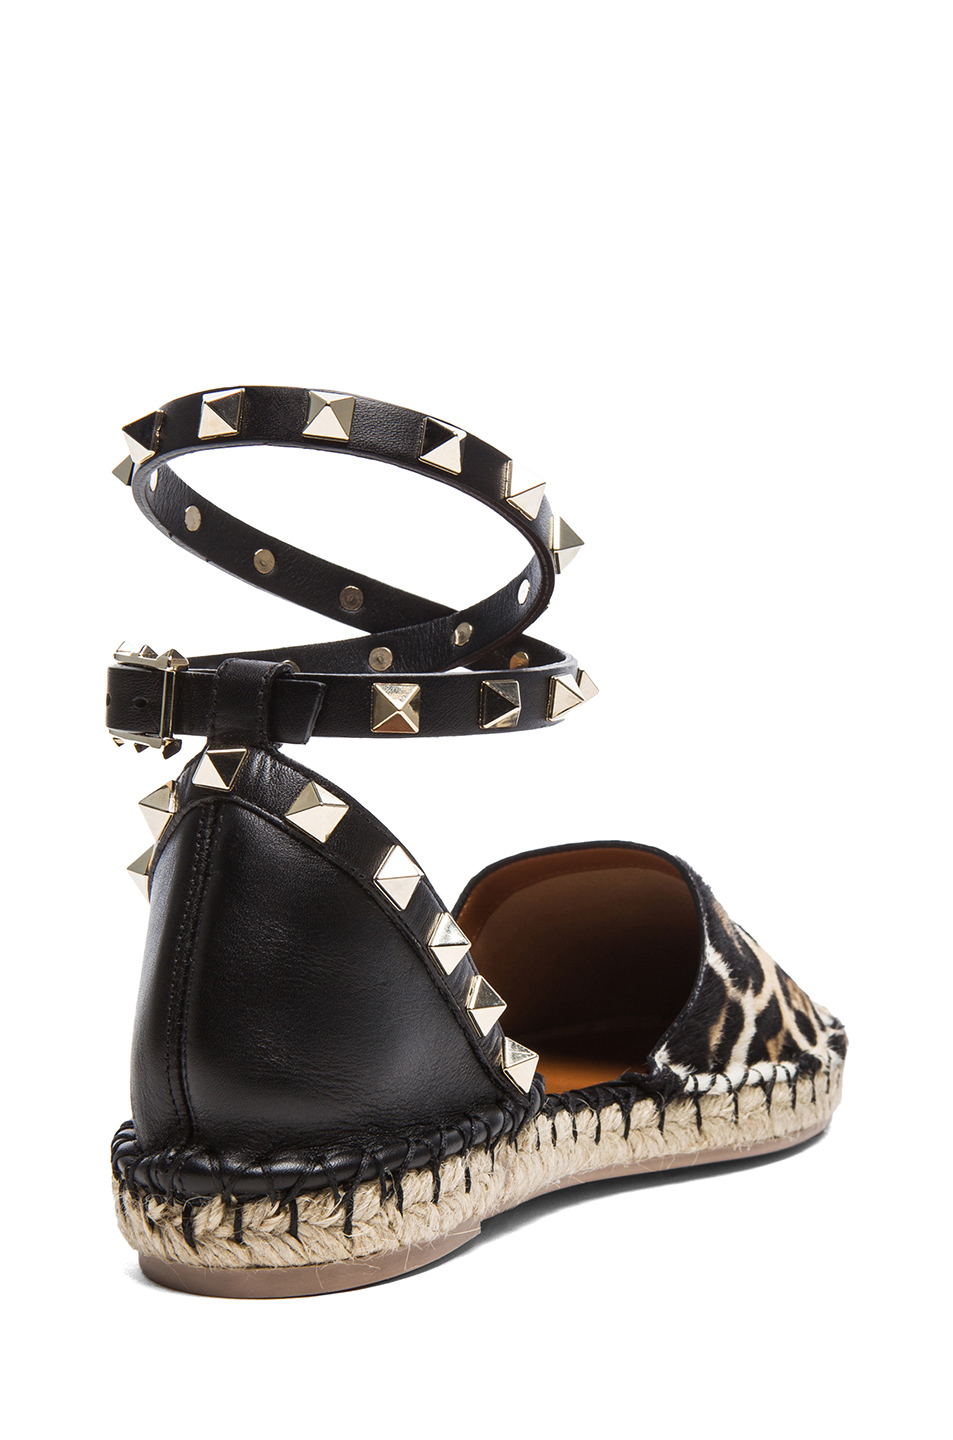 Valentino | Cavallino Double Rockstud Leopard Espadrilles in Moro, White, and Black